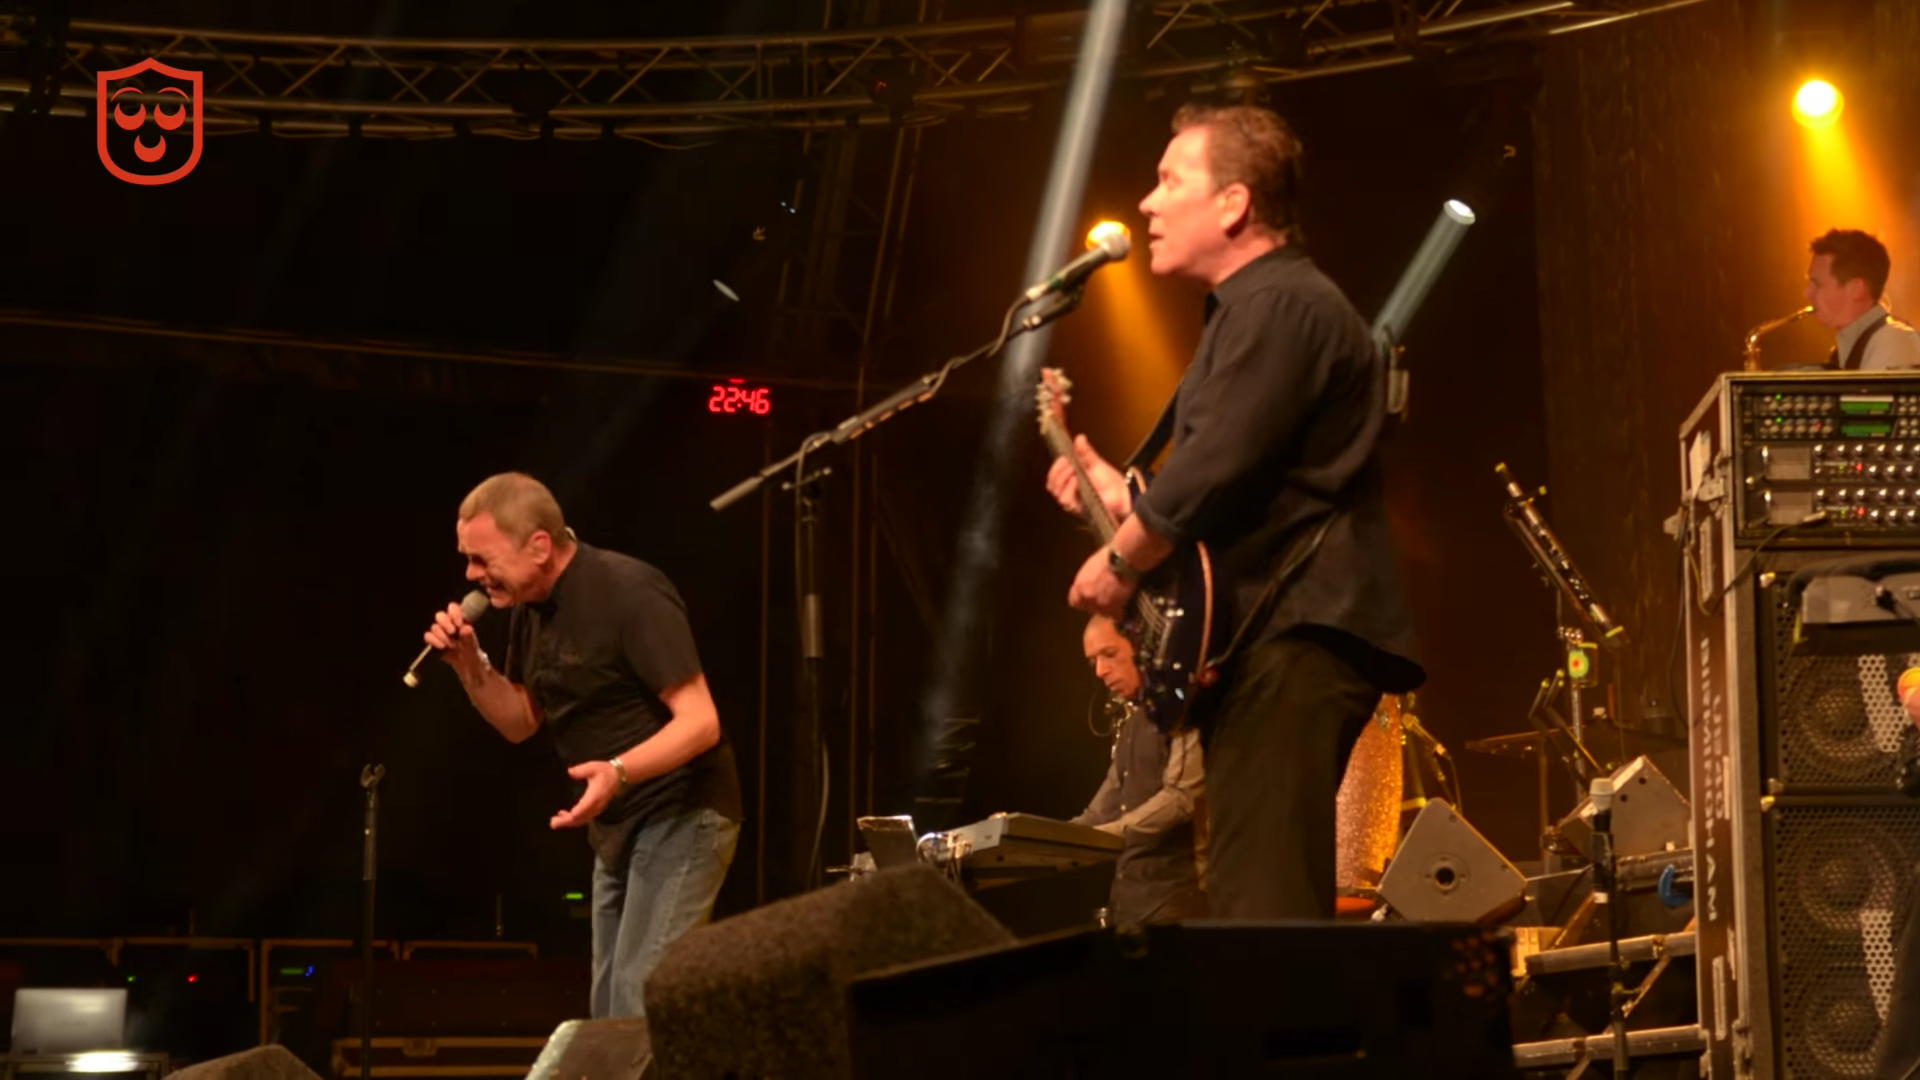 [VIDEO] Lucas Hamming, Ali B. en UB40 op Parkfeest